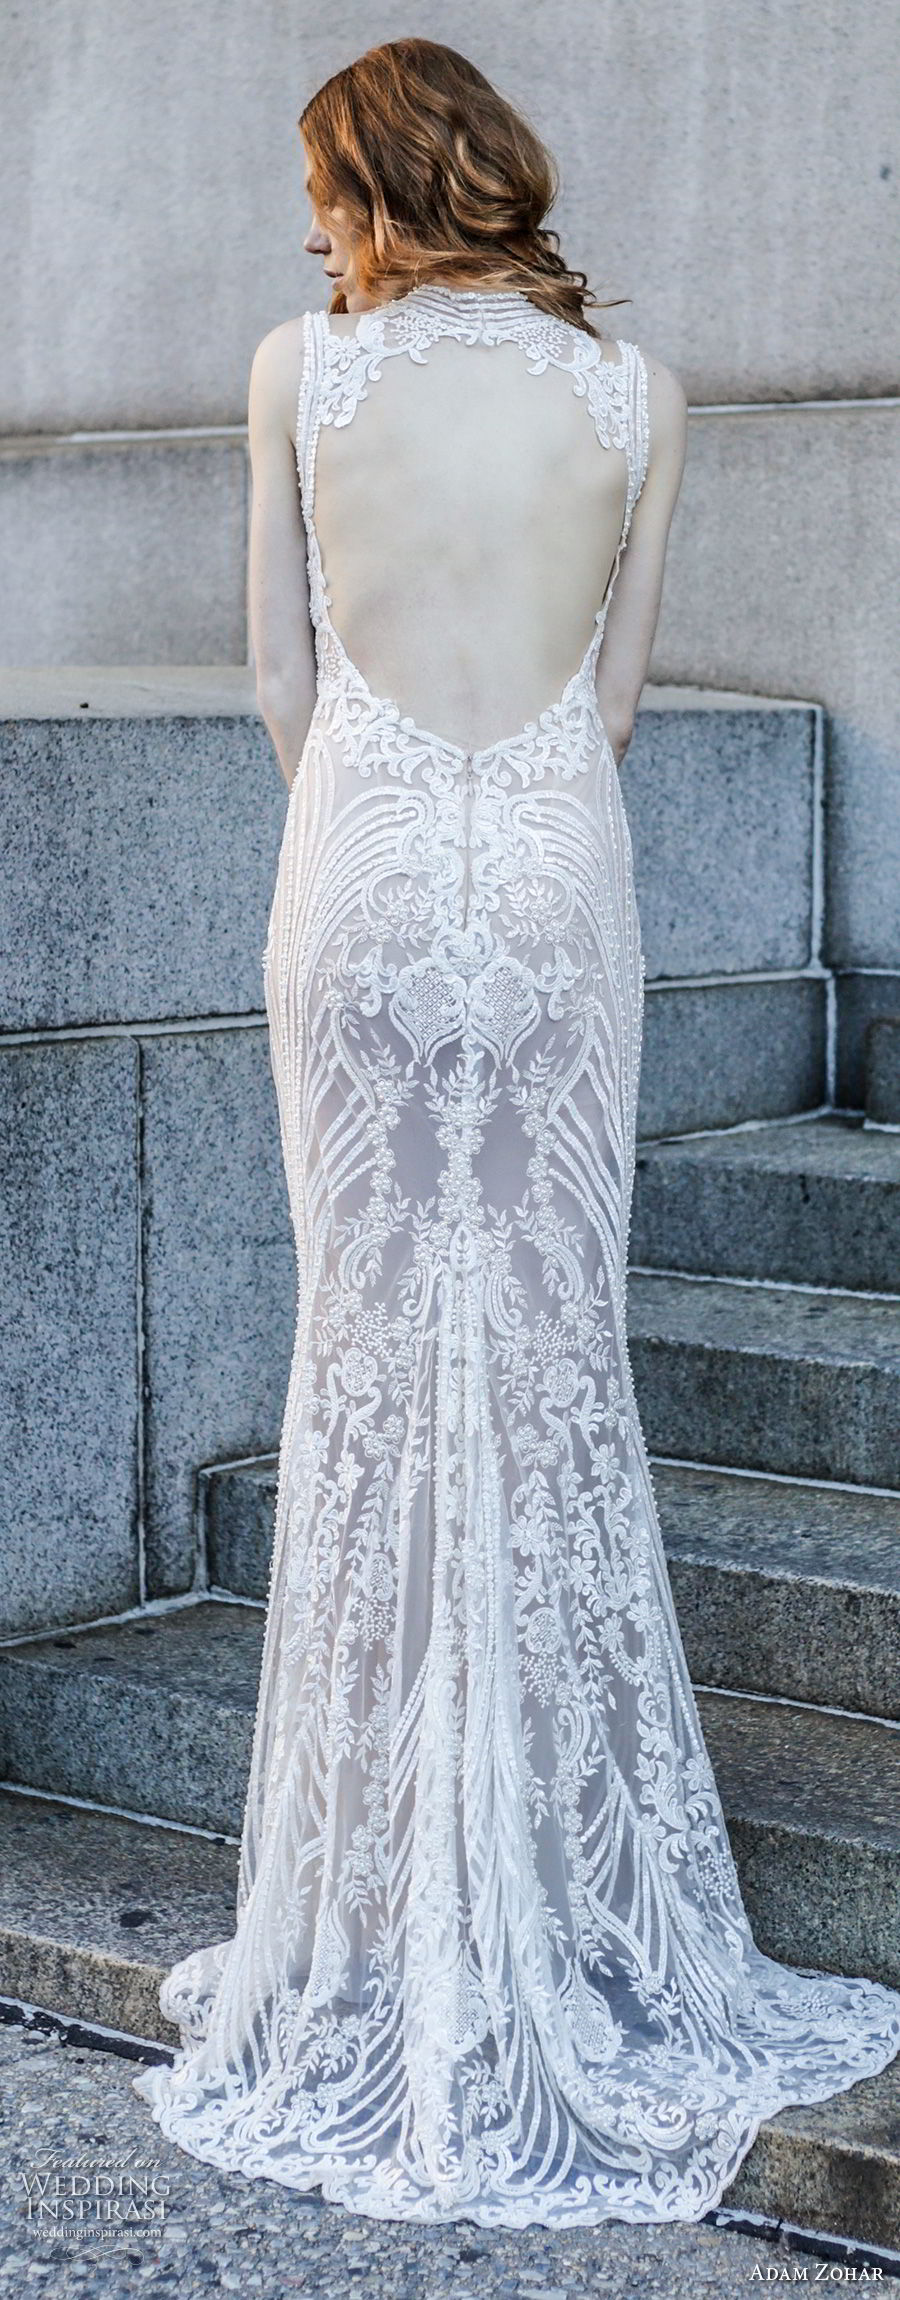 adam zohar 2017 bridal sleeveless jewel neck full embellishment elegant sheath wedding dress keyhole back sweep train (3) zbv